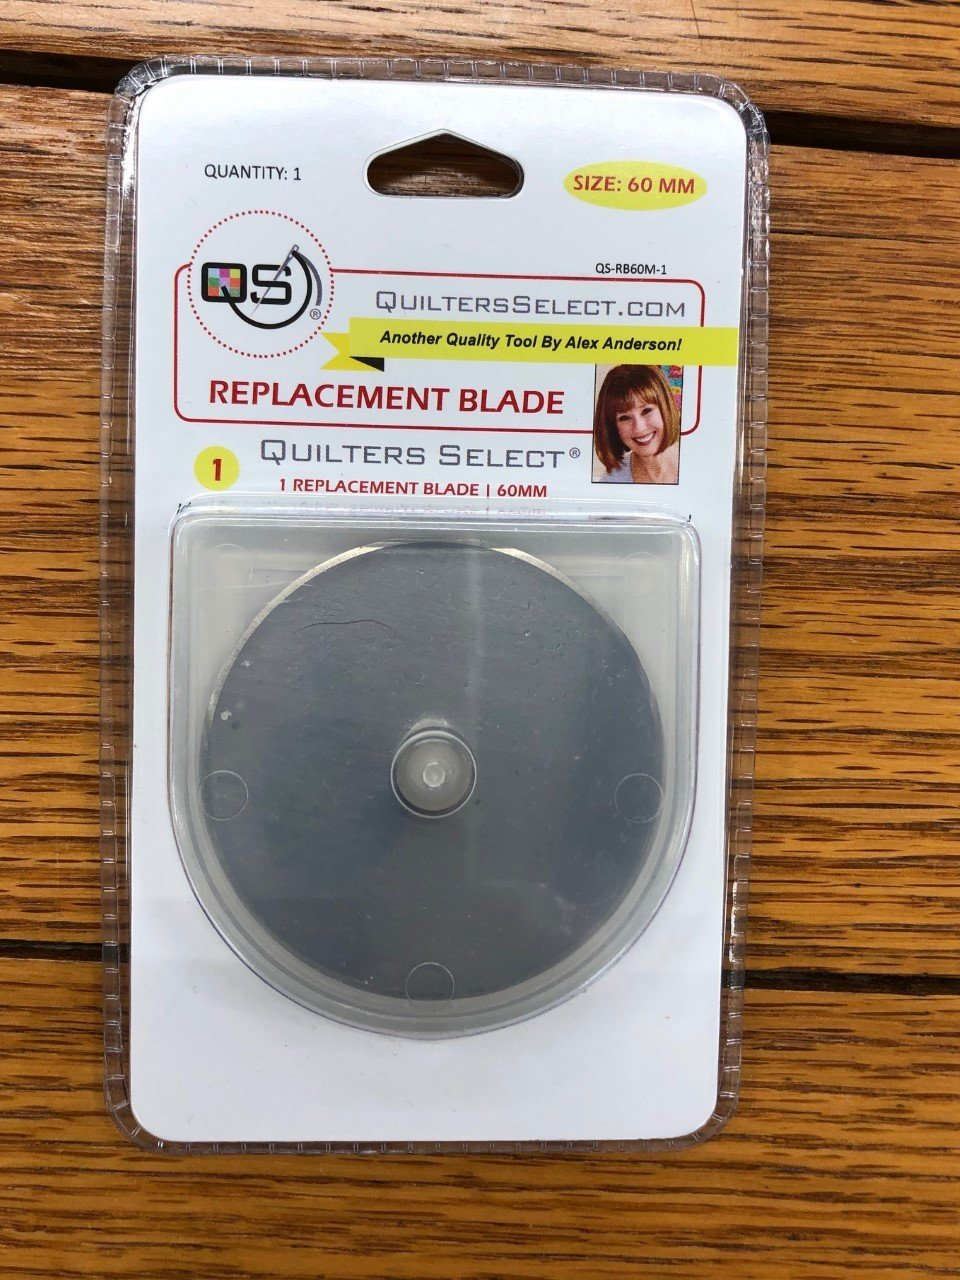 FLORIANI QS 60MM REPLACEMENT BLADE